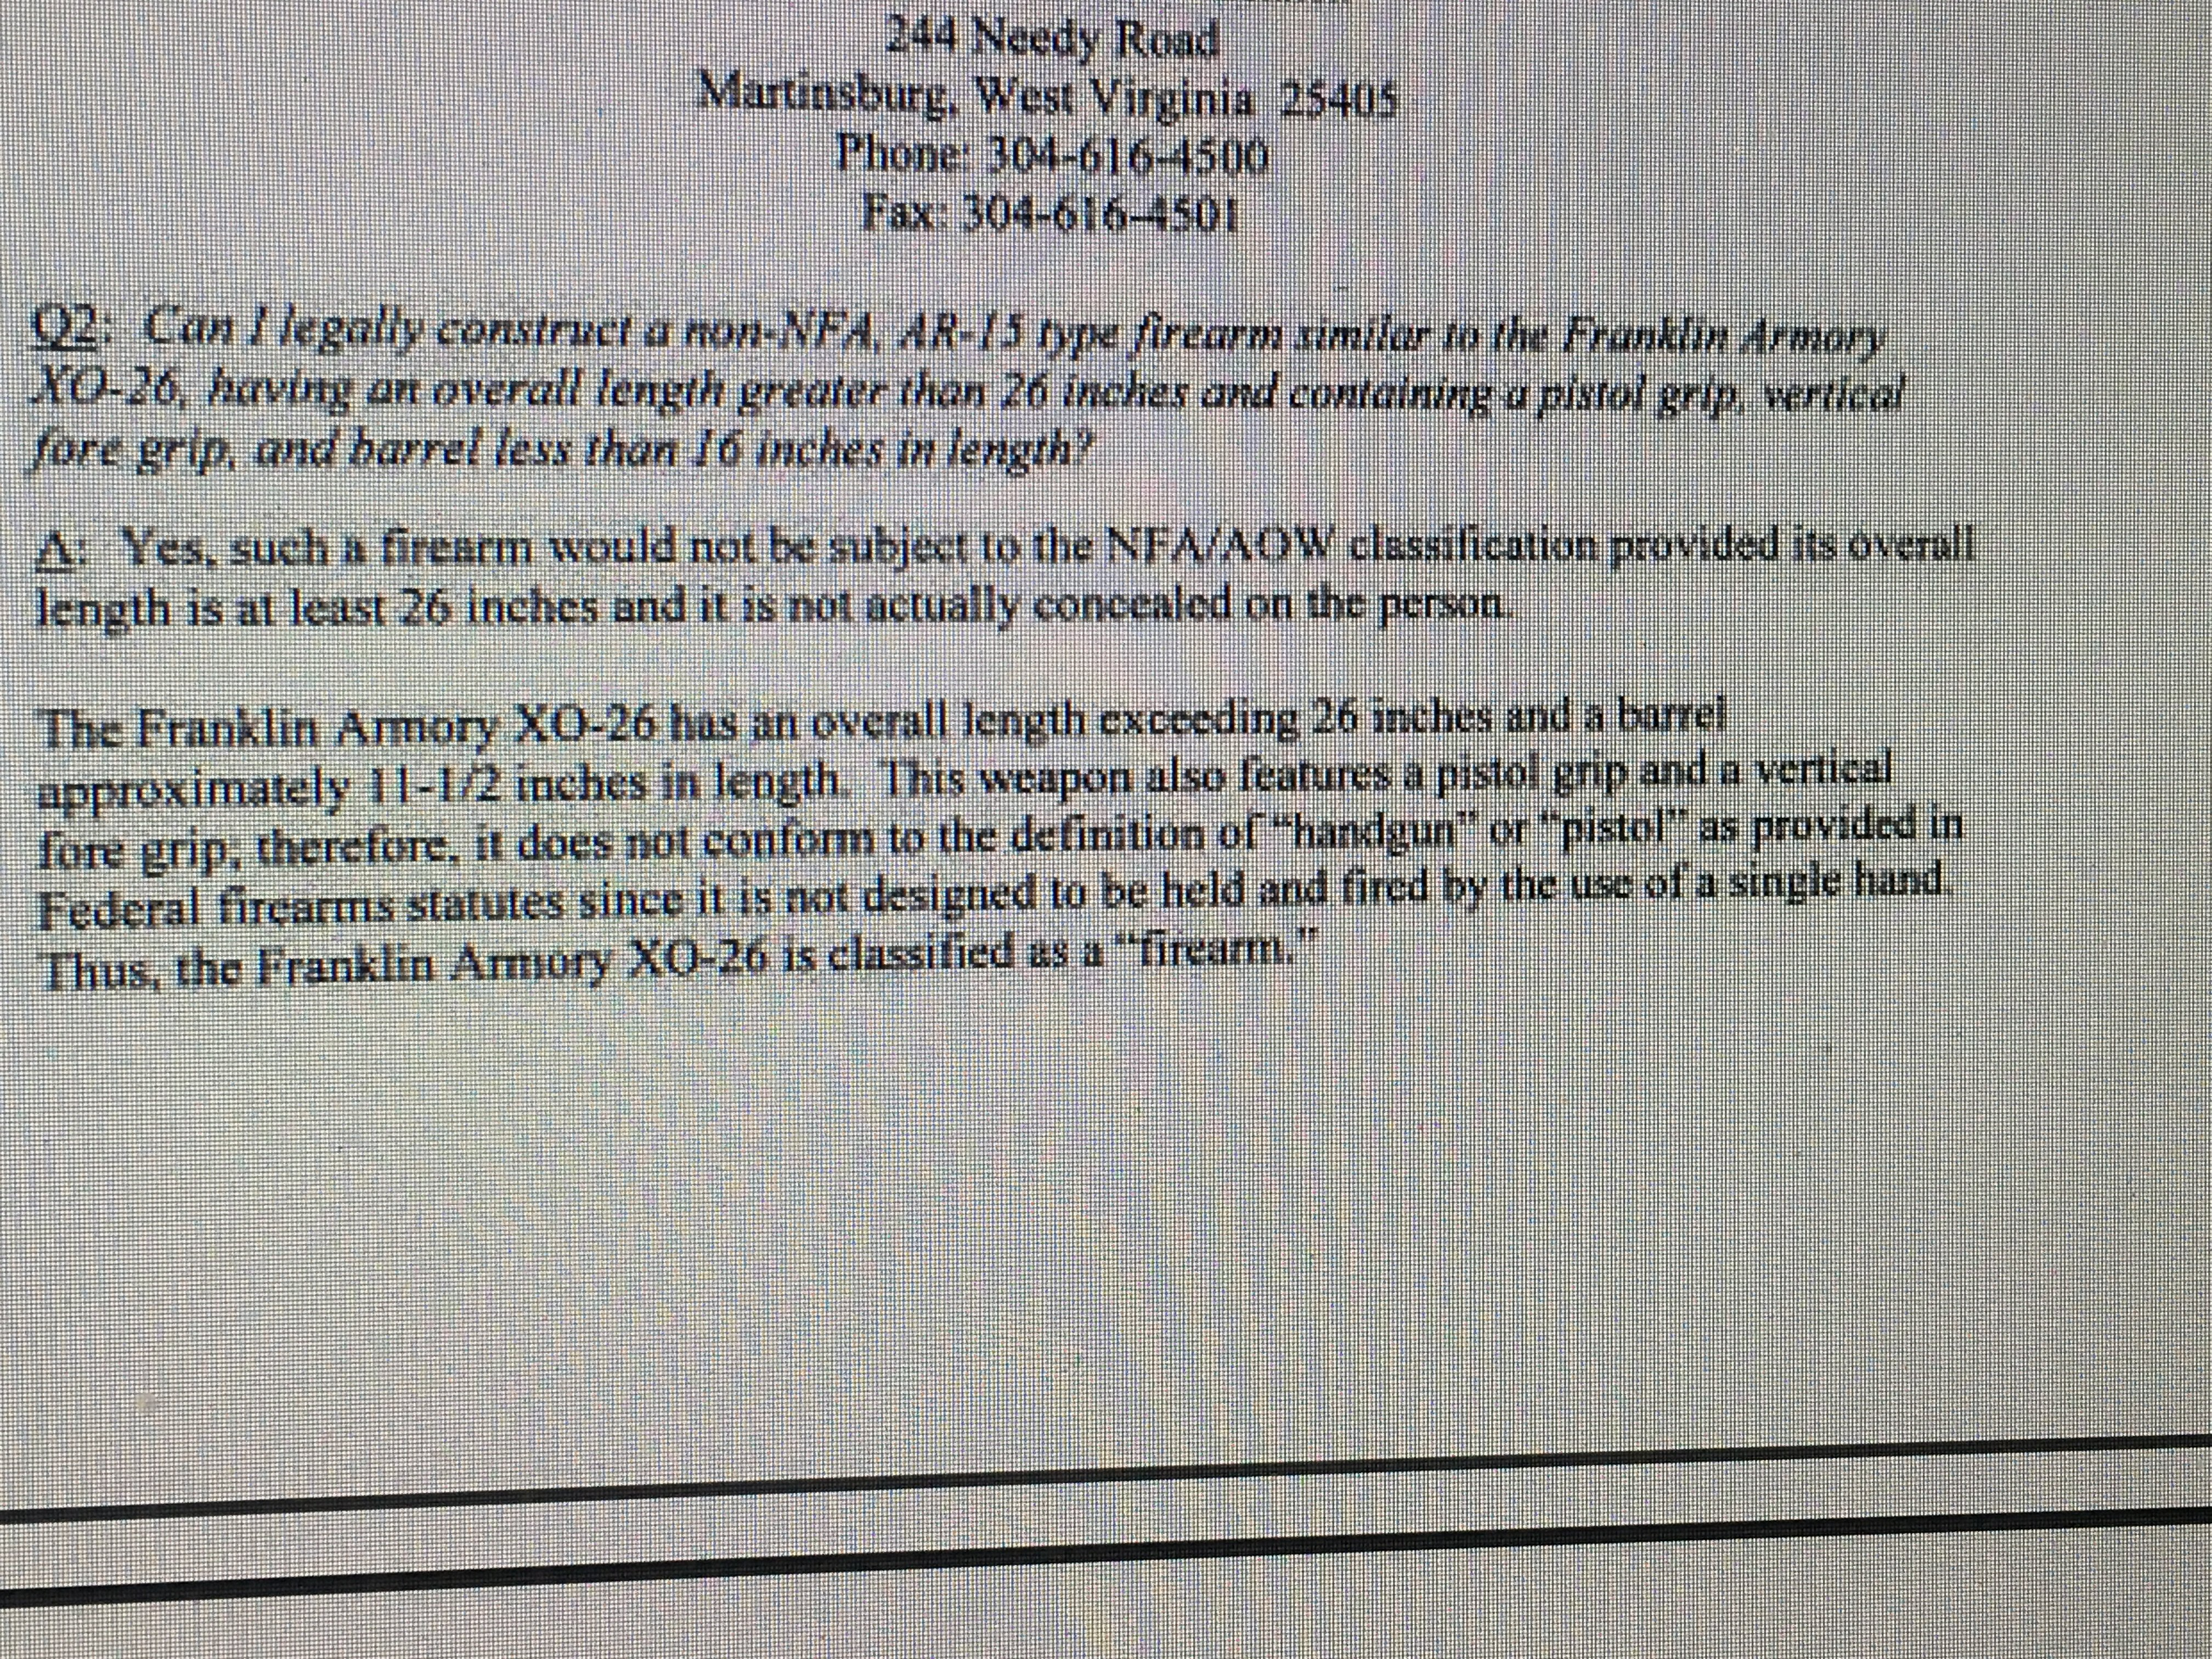 Legal Status of Non-NFA Firearm AR Build? - Page 5 - Other